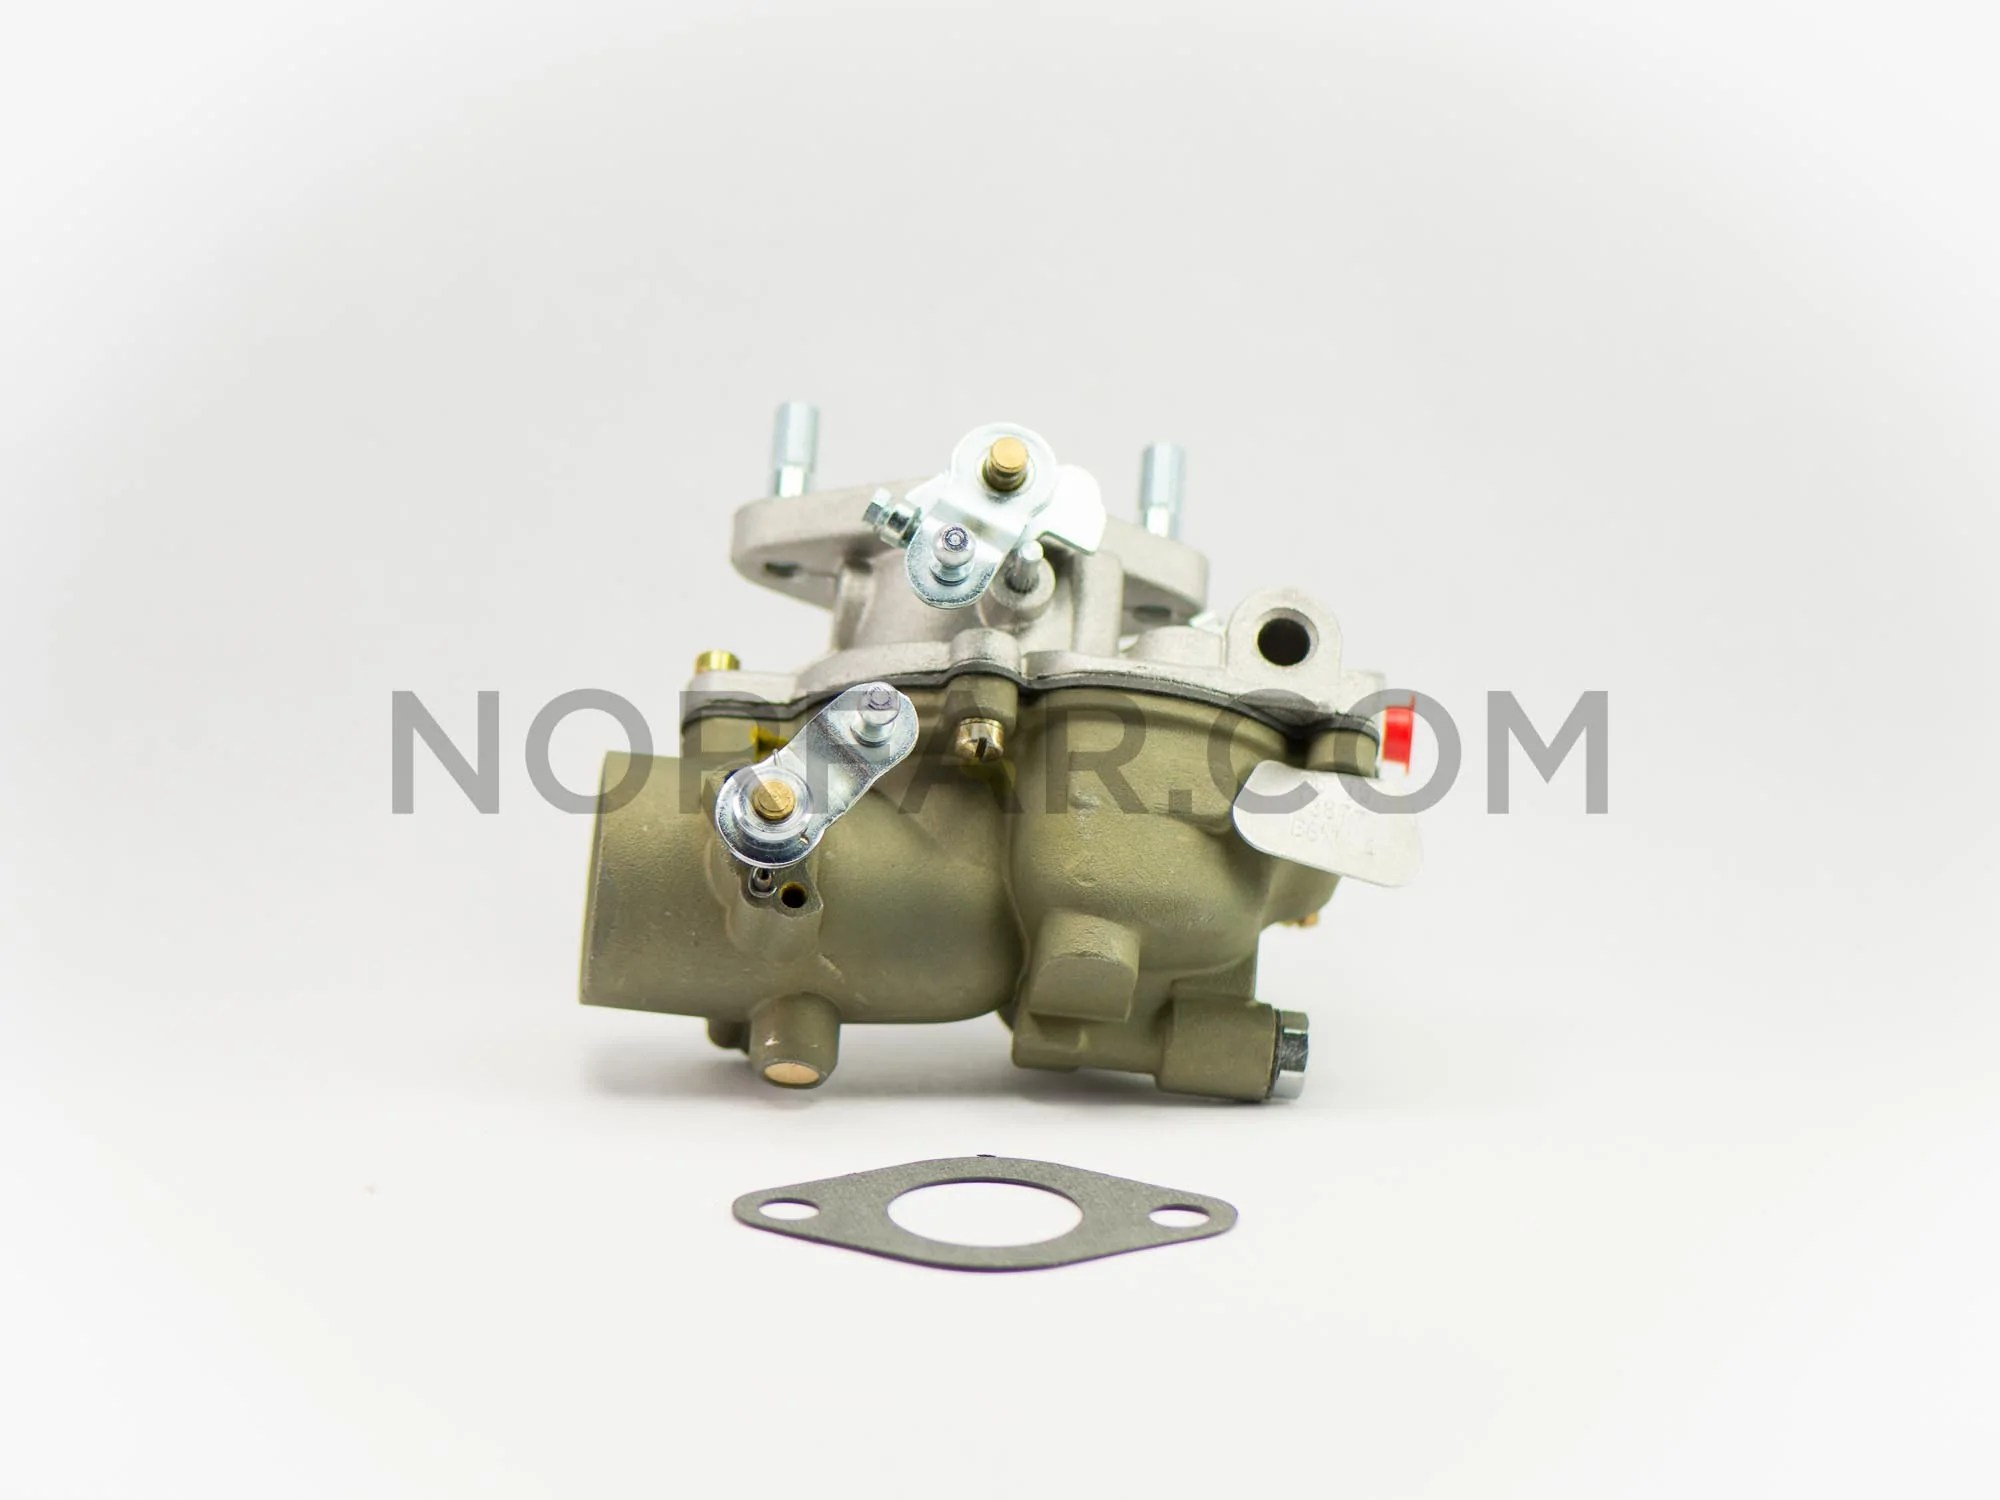 hight resolution of zenith 13877 carburetor ford b6nn9510 a norfar com farmall super h carburetor diagram zenith 13877 carburetor